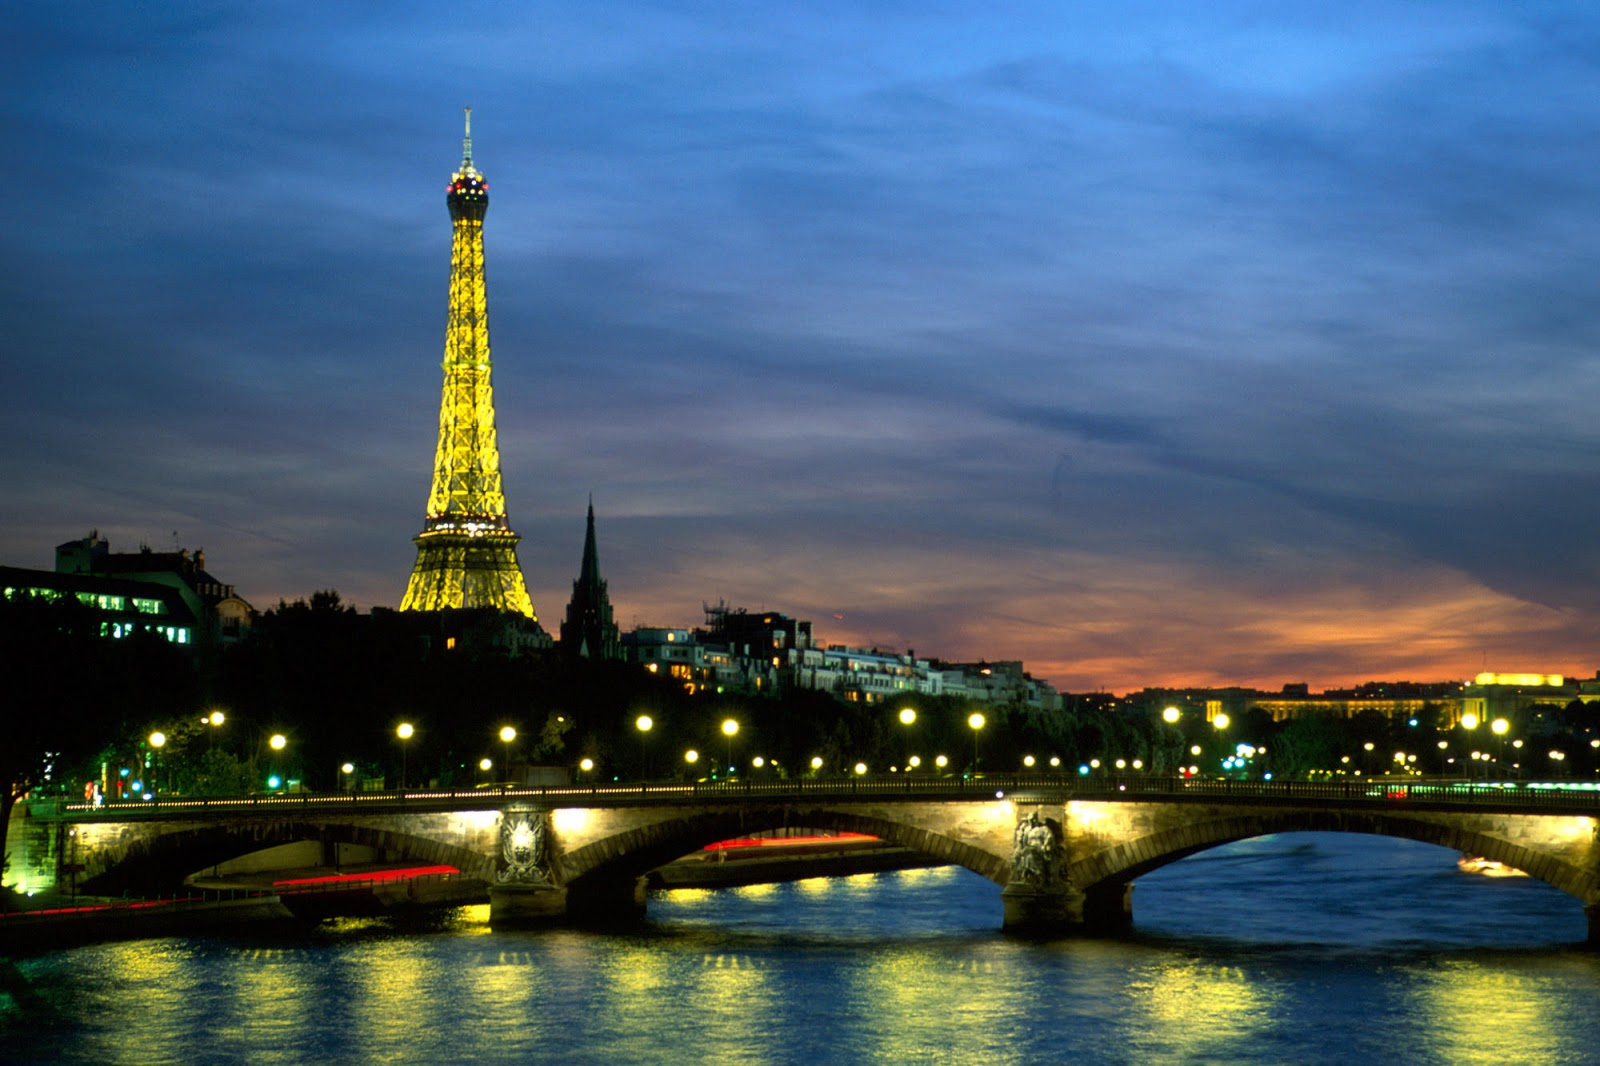 android phones wallpapers: android wallpaper paris at night dual